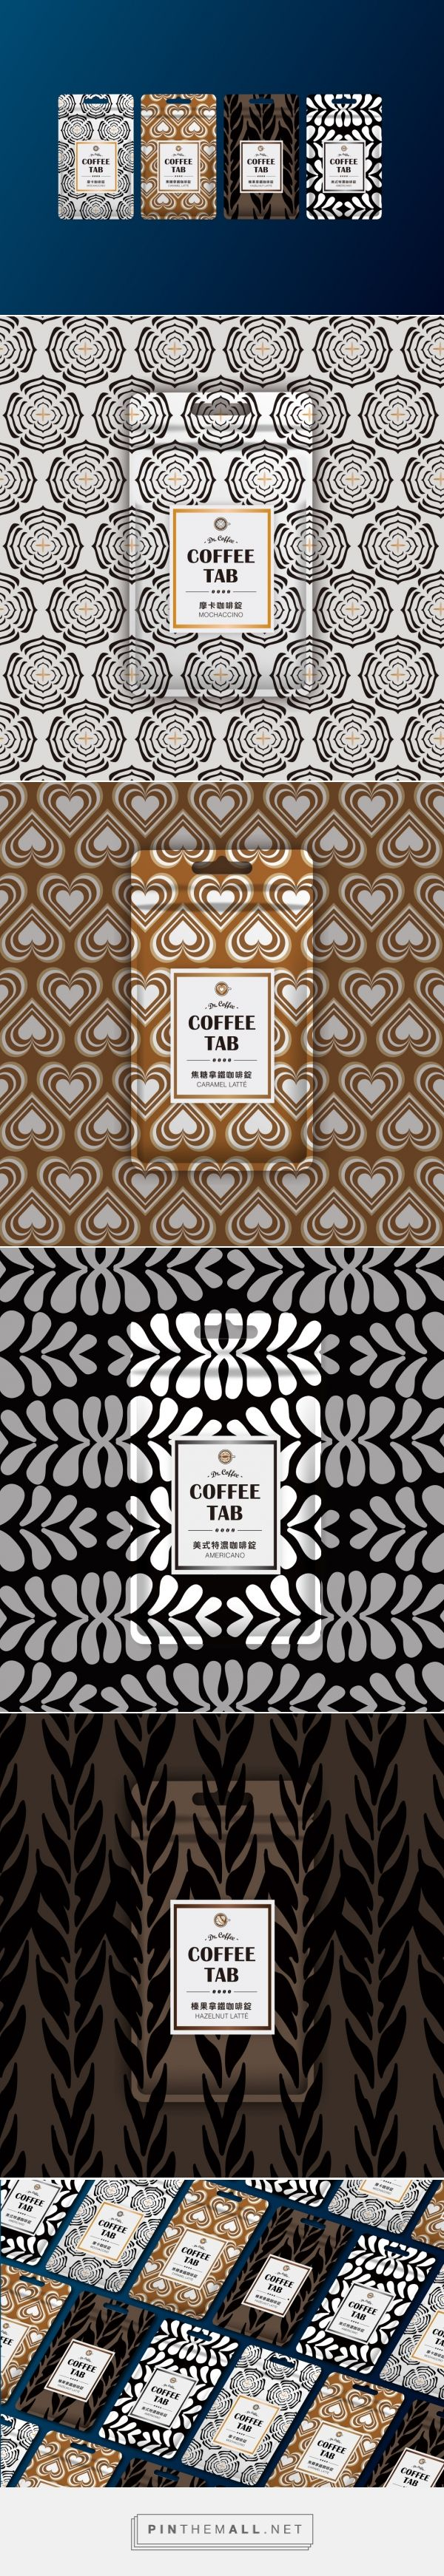 Dr.Coffee - Packaging of the World - Creative Package Design Gallery - http://www.packagingoftheworld.com/2016/07/drcoffee.html